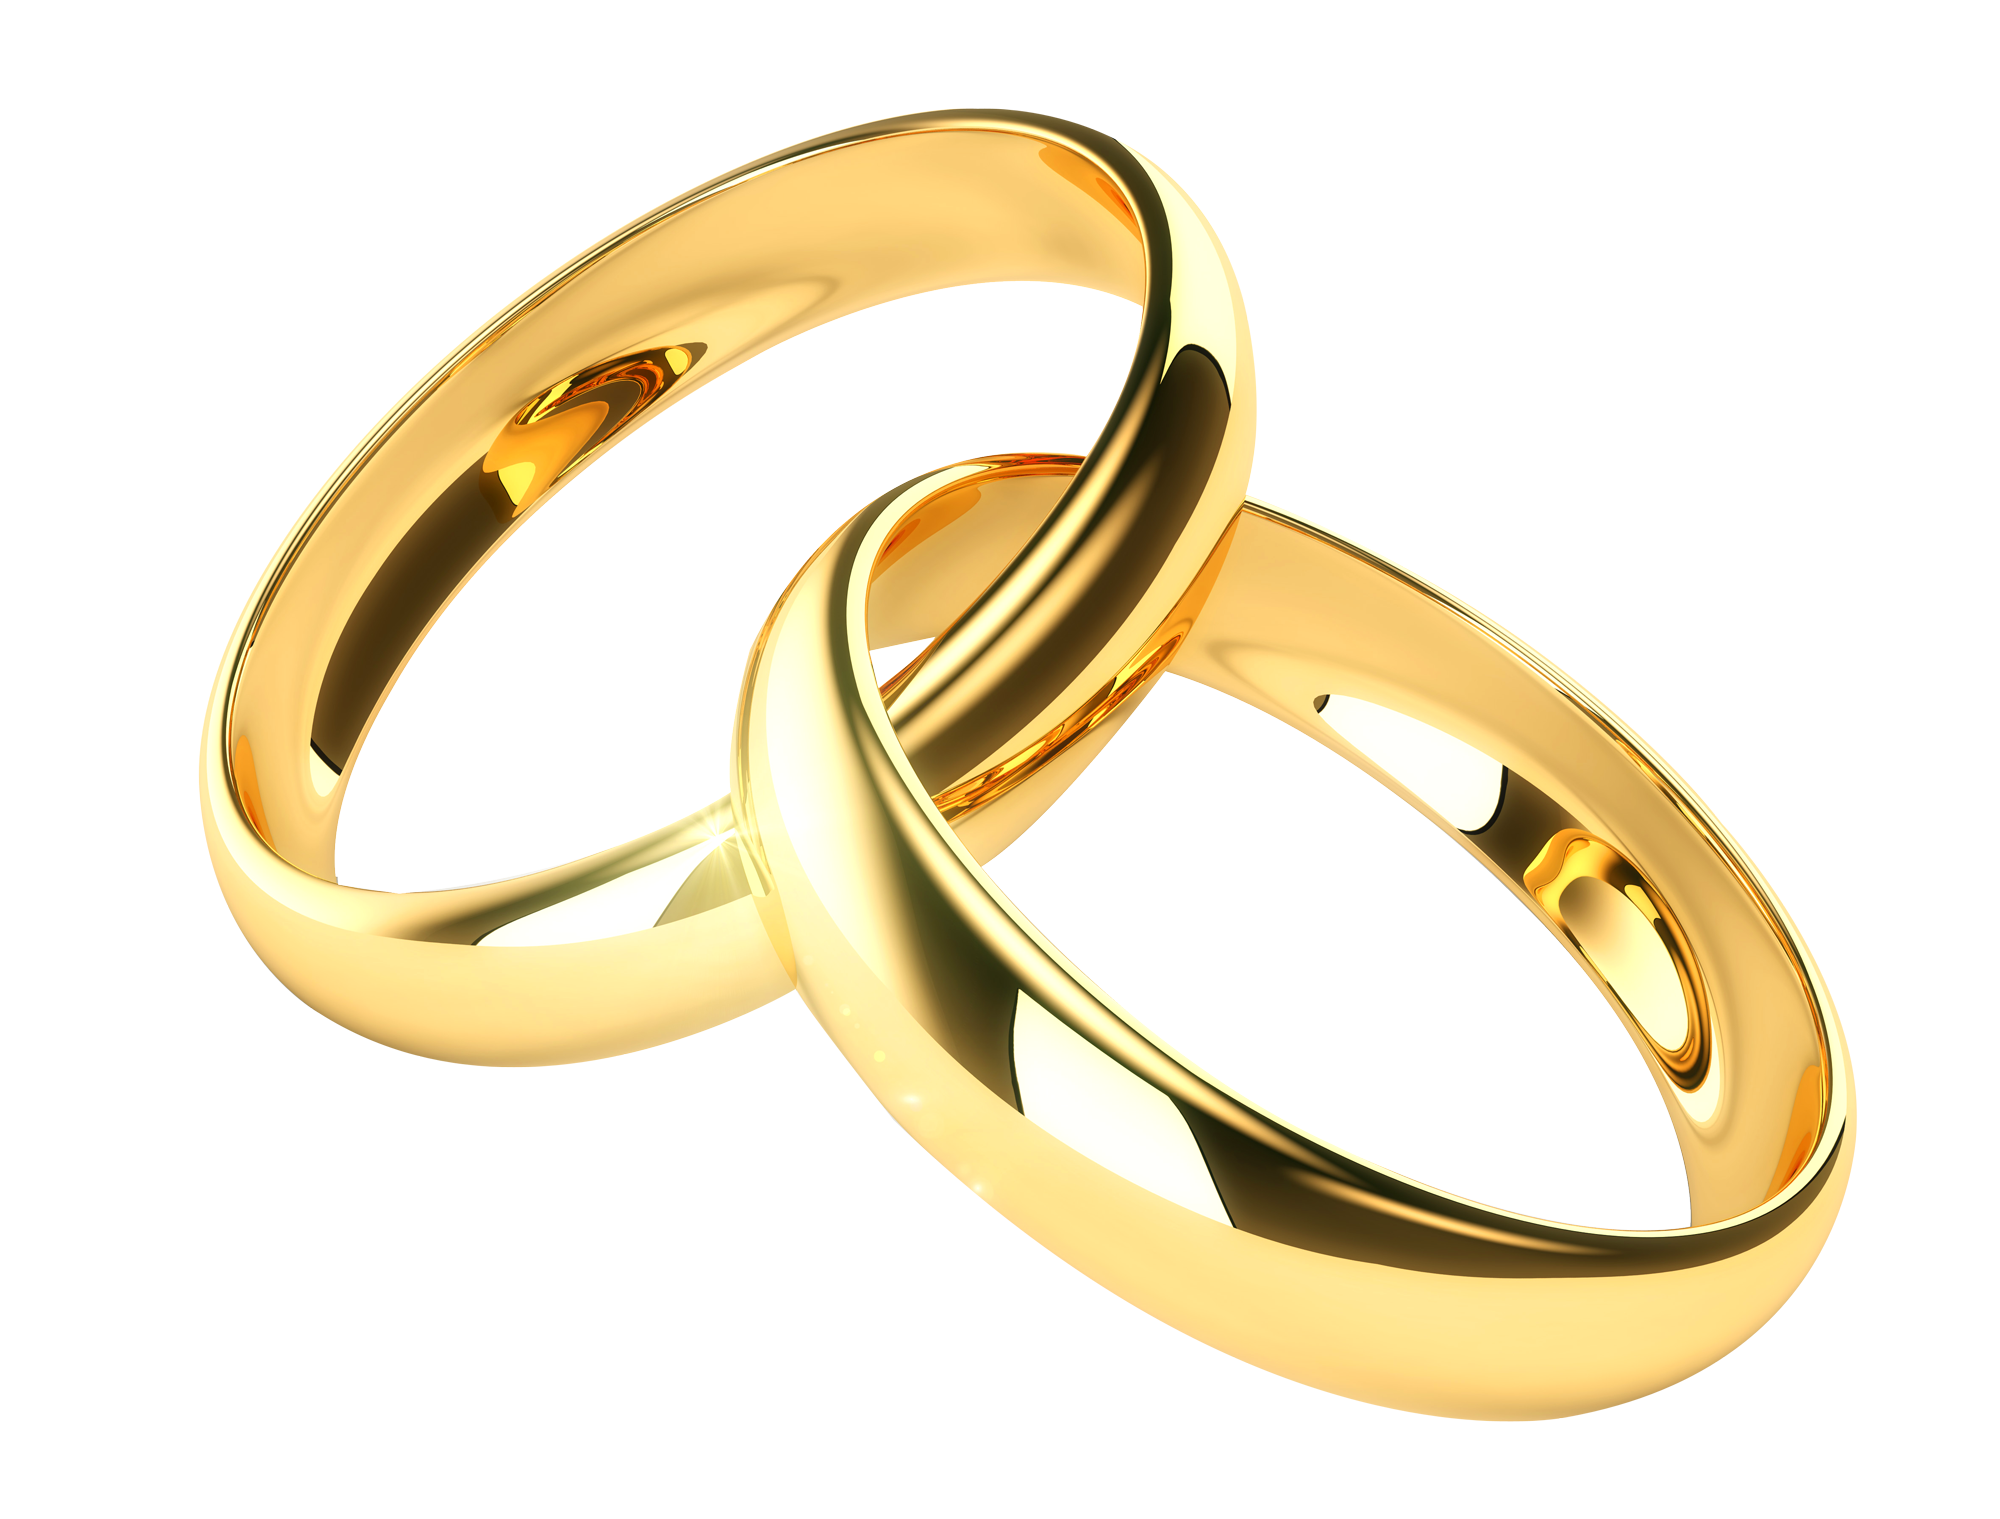 Wedding Ring PNG image